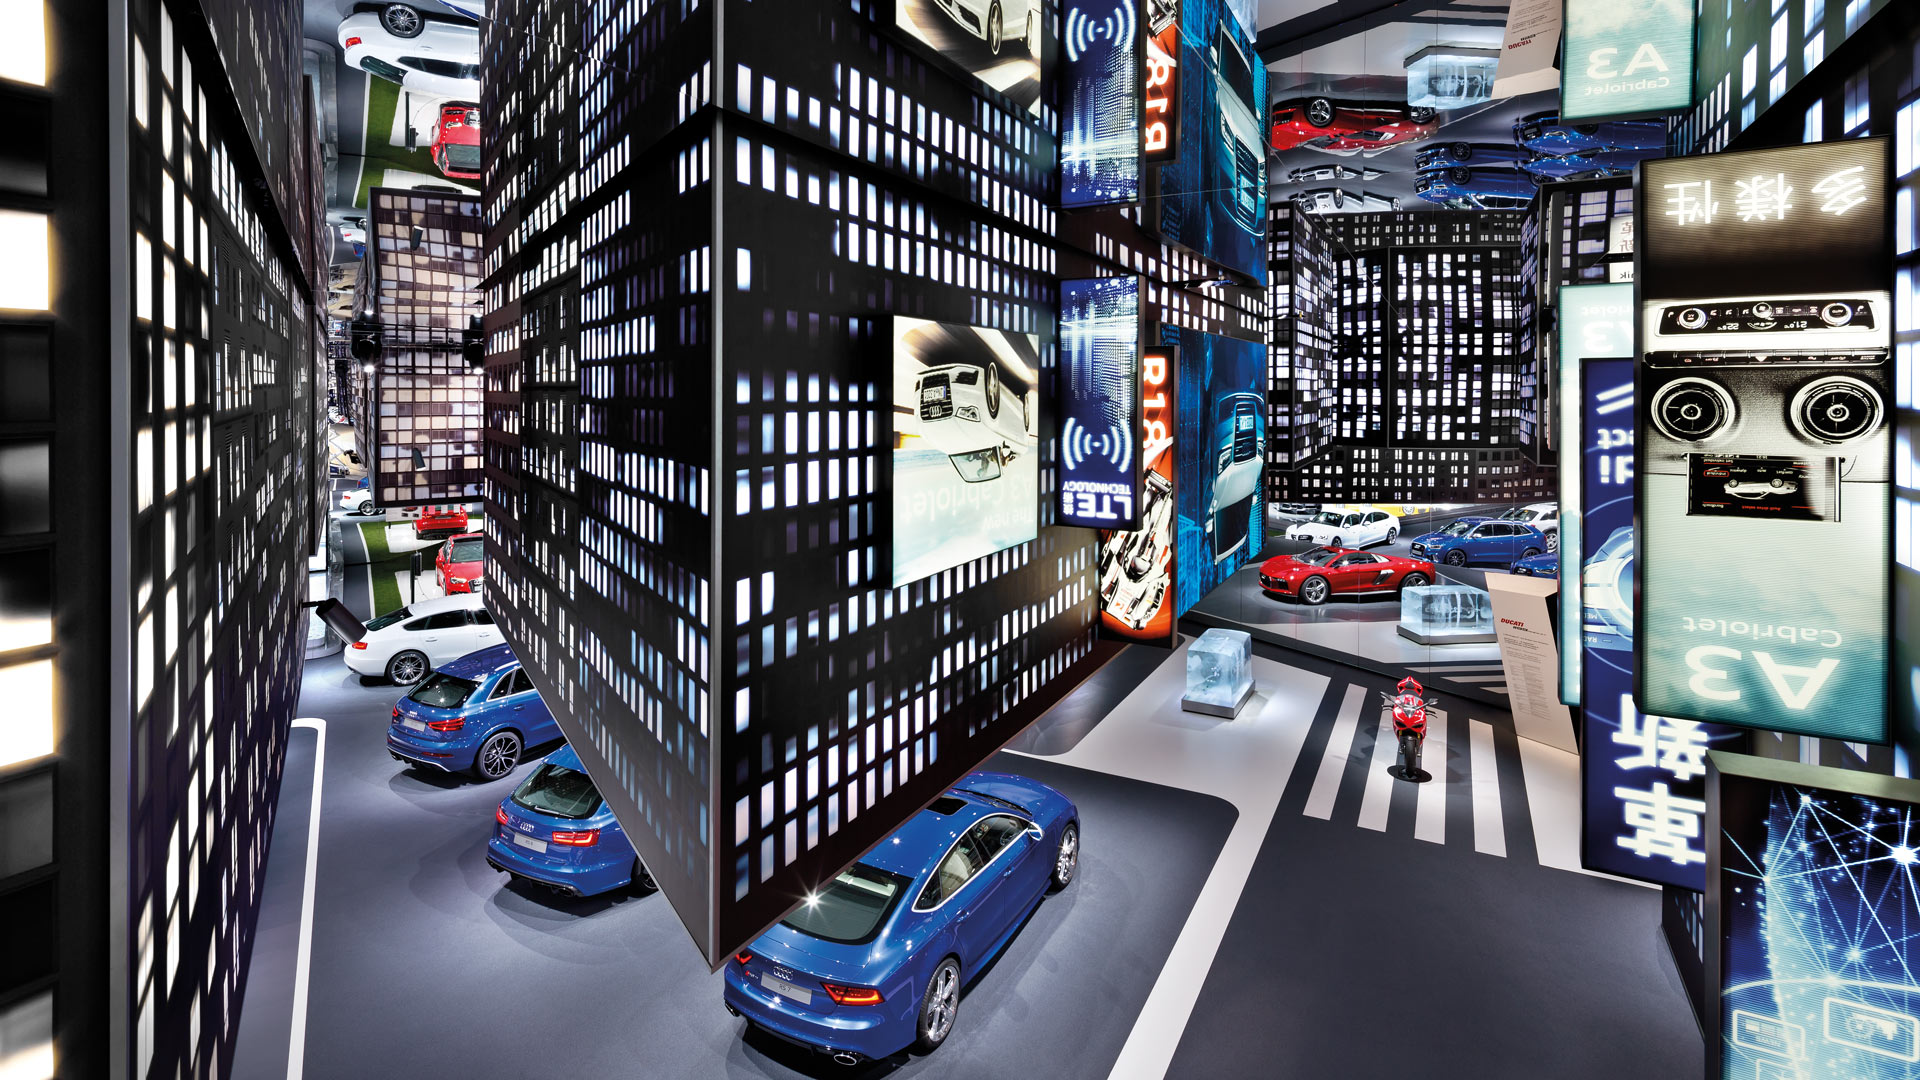 A view from above shows the hanging office buildings and the Audi models standing on the floor.